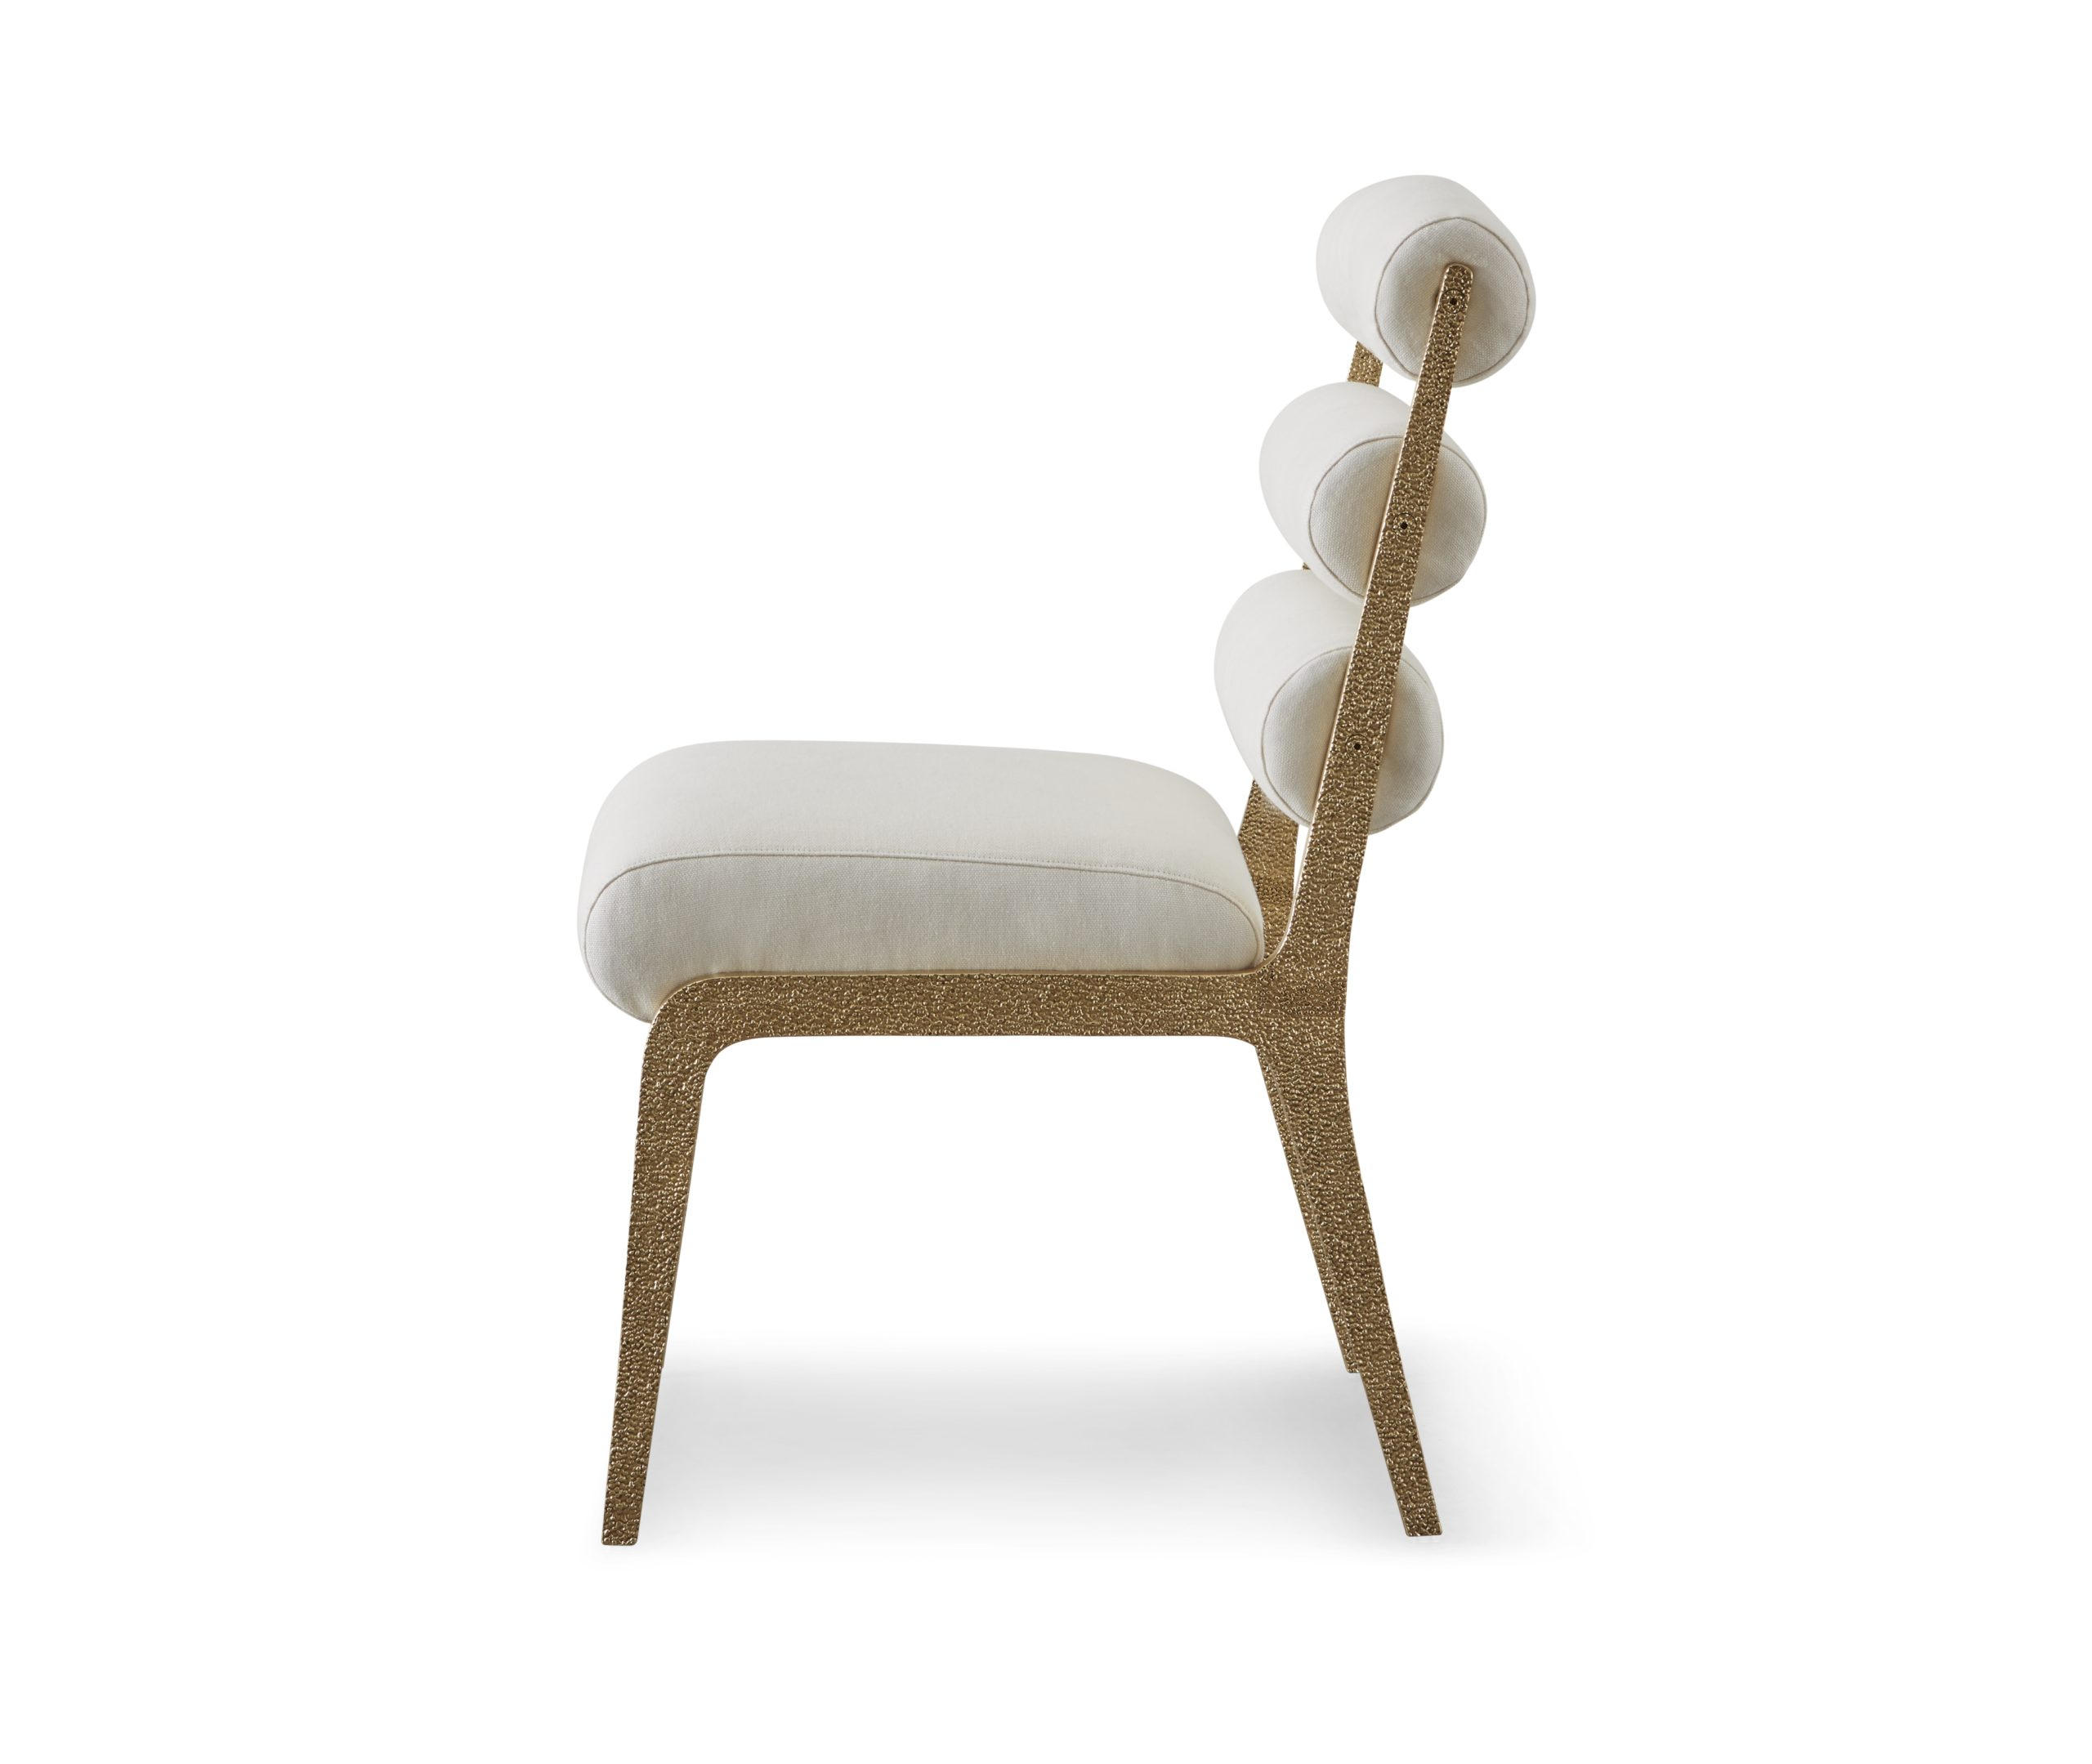 Baker_products_WNWN_lucca_chair_BAA3043_SIDE-scaled-2